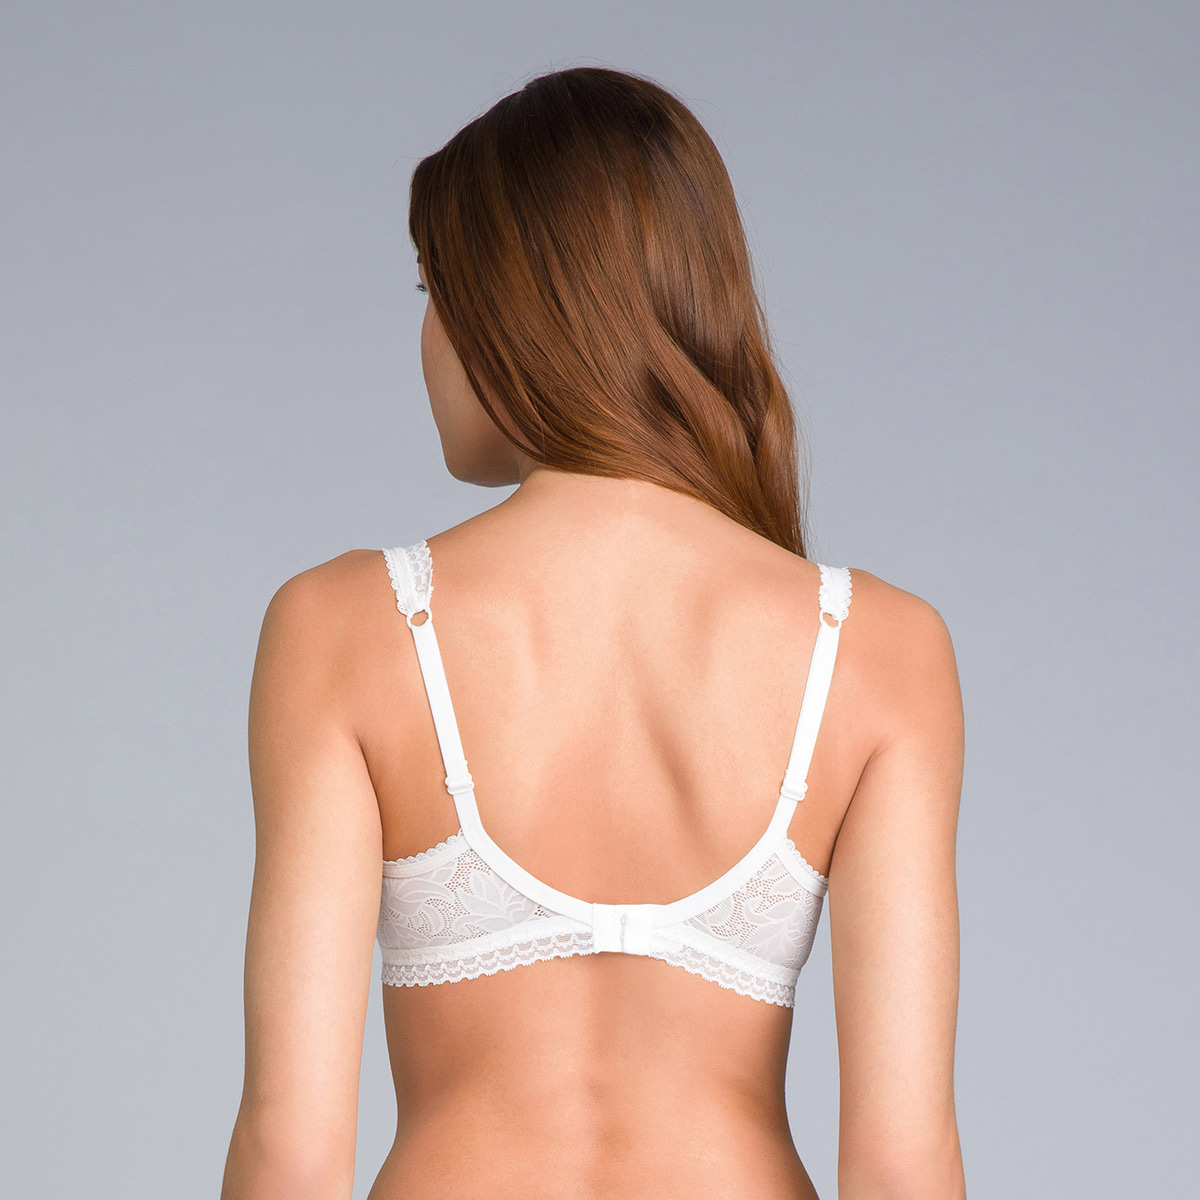 Balcony Bra in Antique White Lace - Invisible Elegance, , PLAYTEX